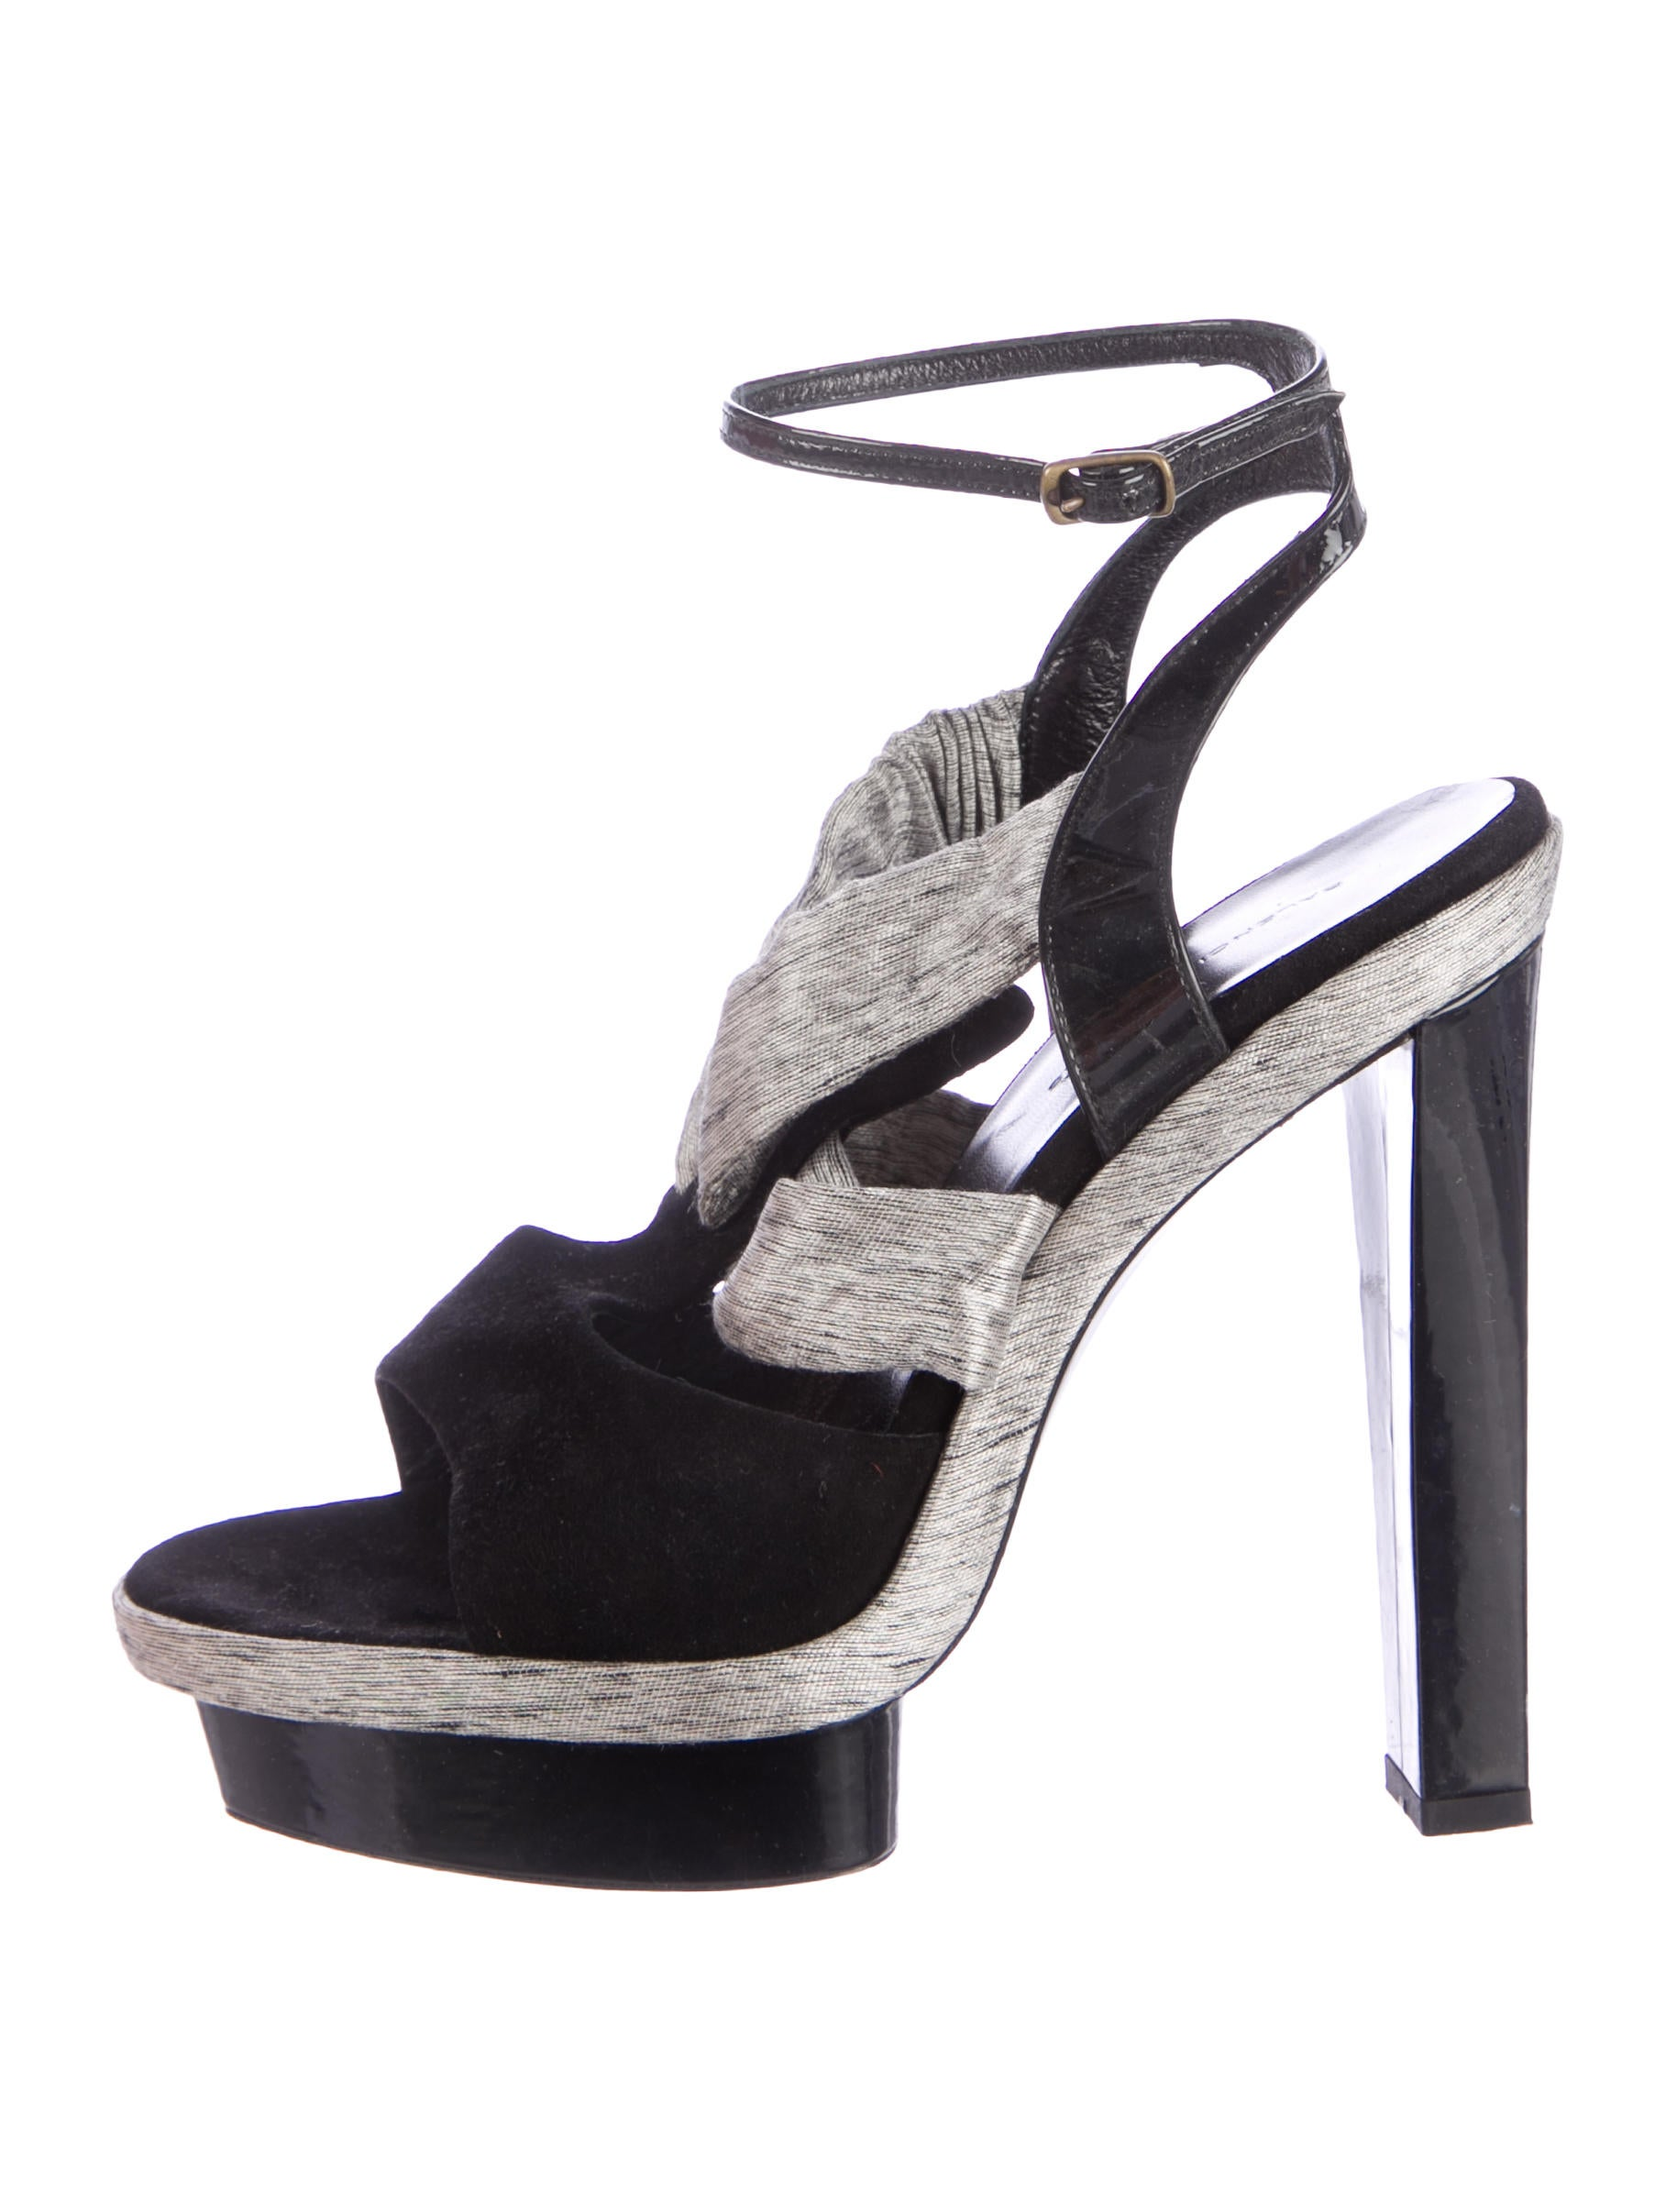 Shop ankle strap platform shoes at Neiman Marcus, where you will find free shipping on the latest in fashion from top designers.